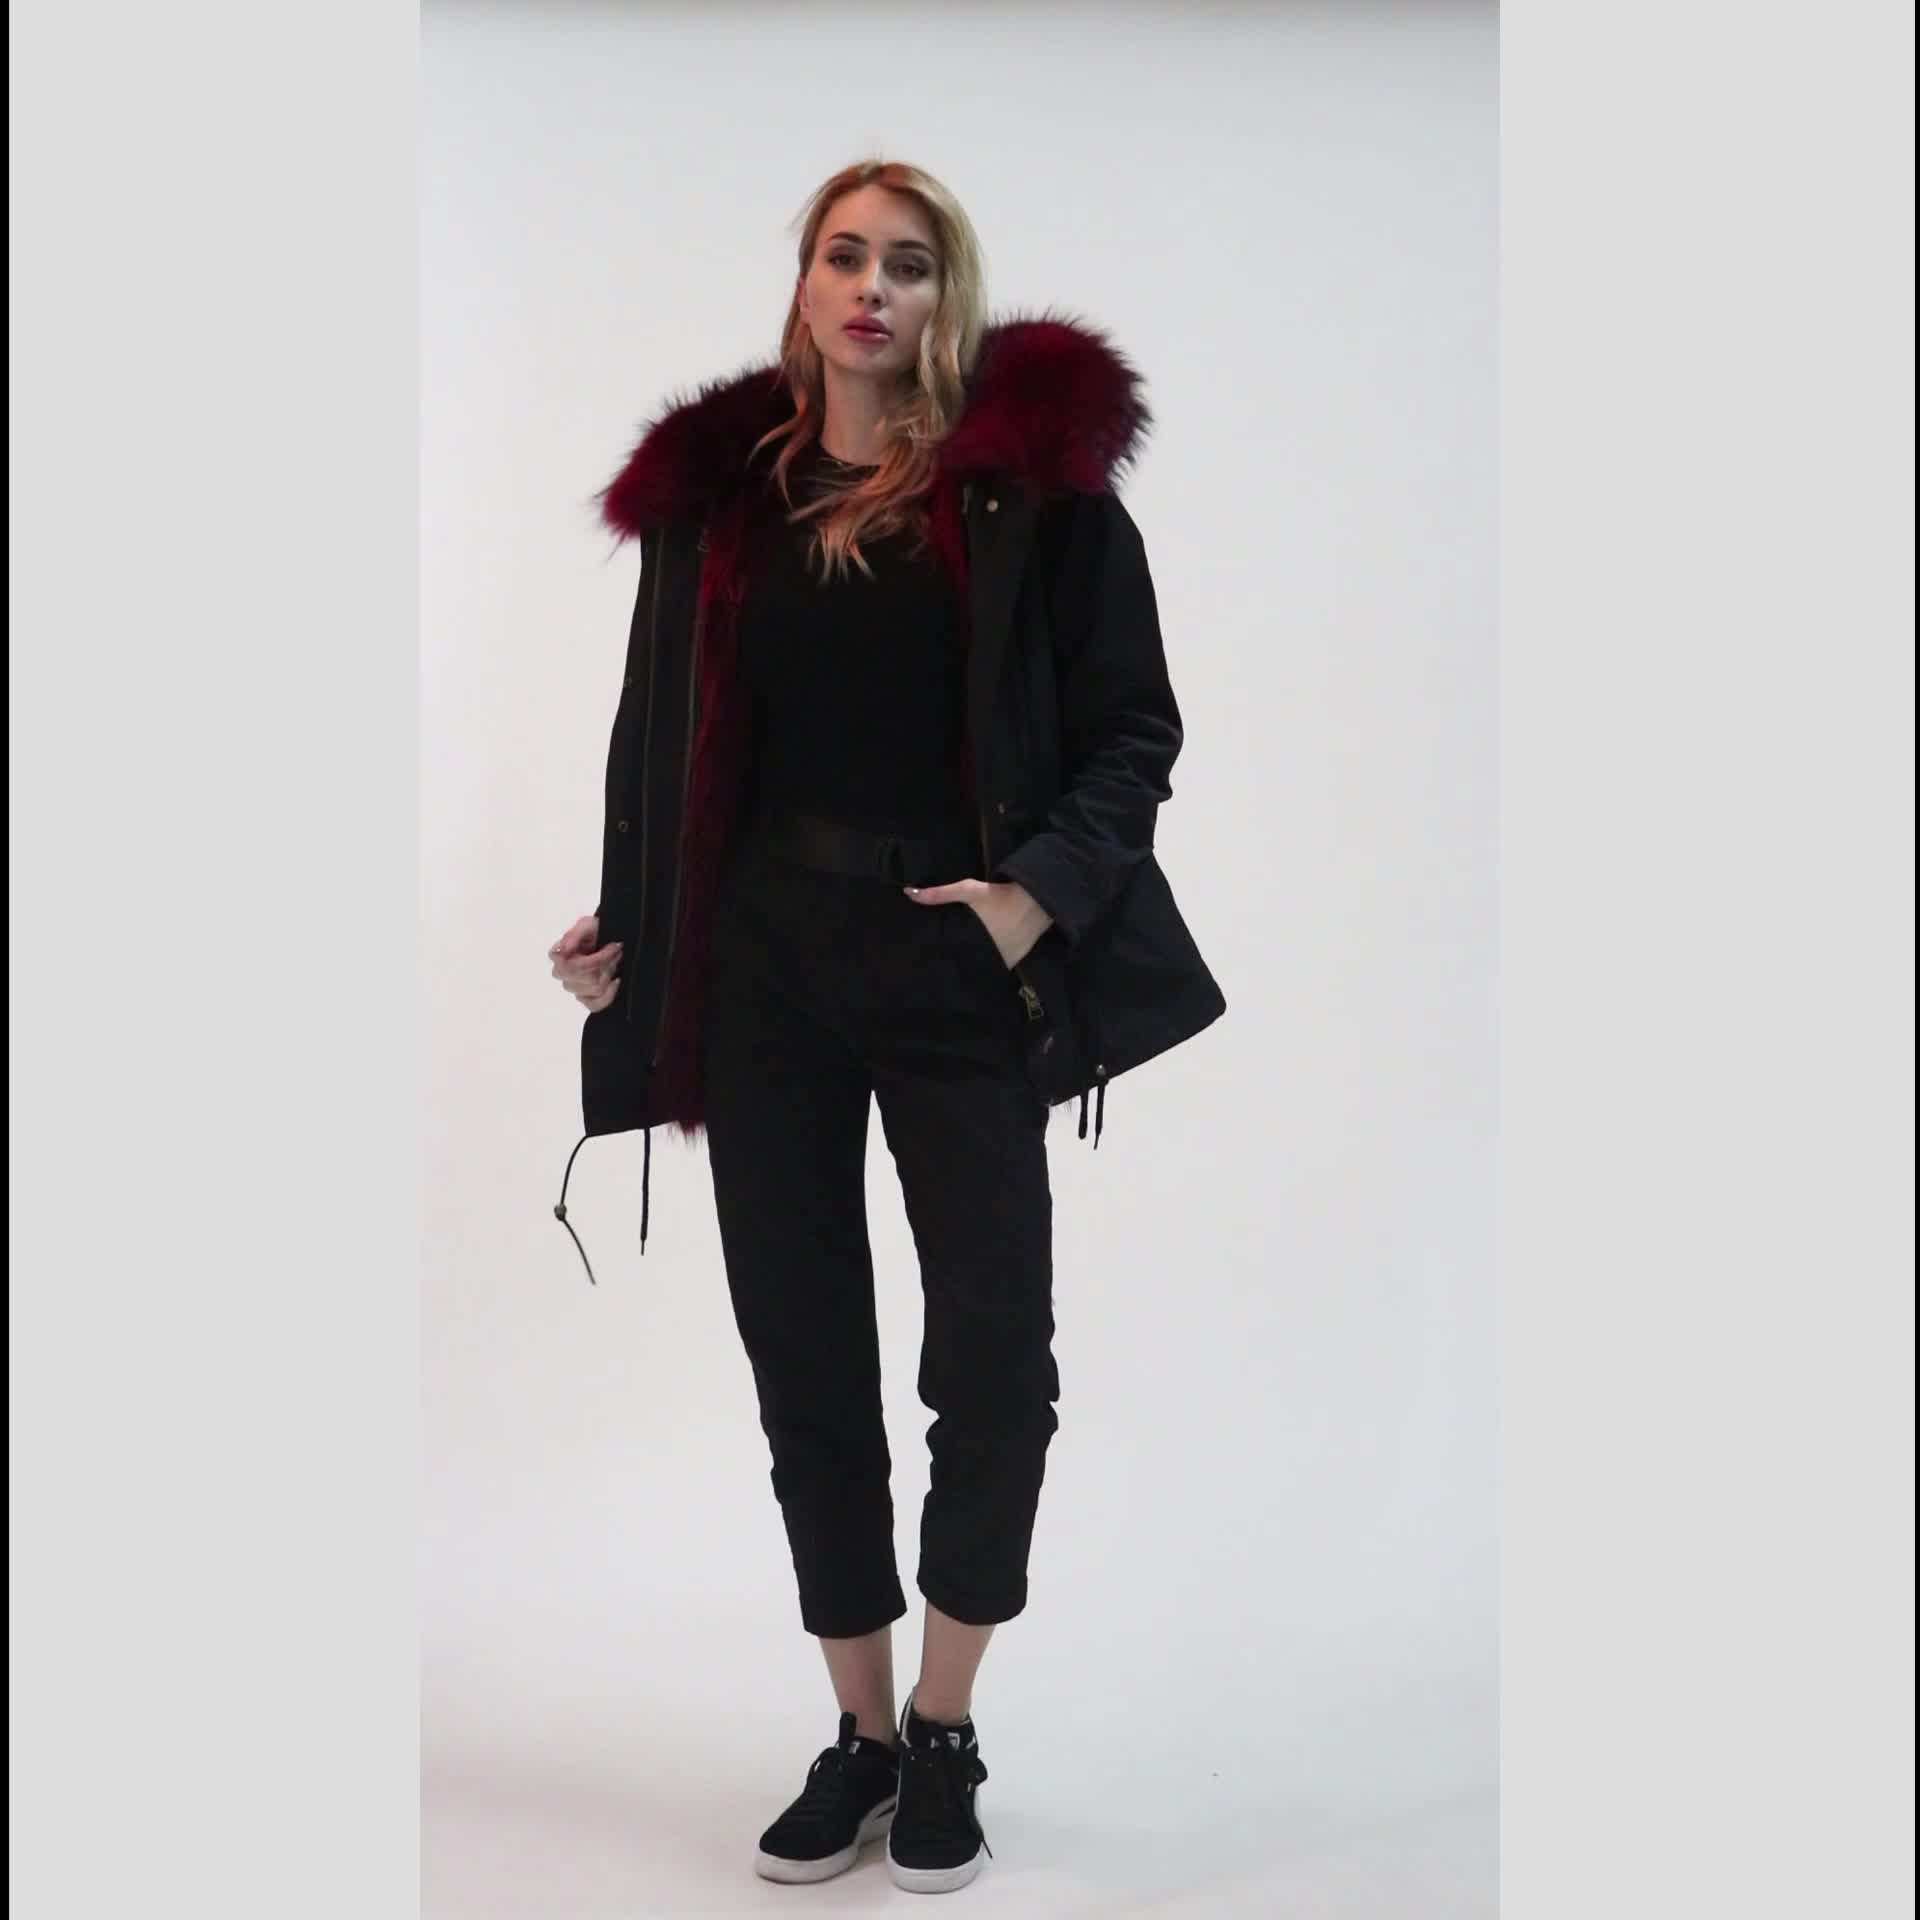 Ladies Winter Warm Clothes Hooded Jacket Real Raccoon Fur Parka Coat for Women